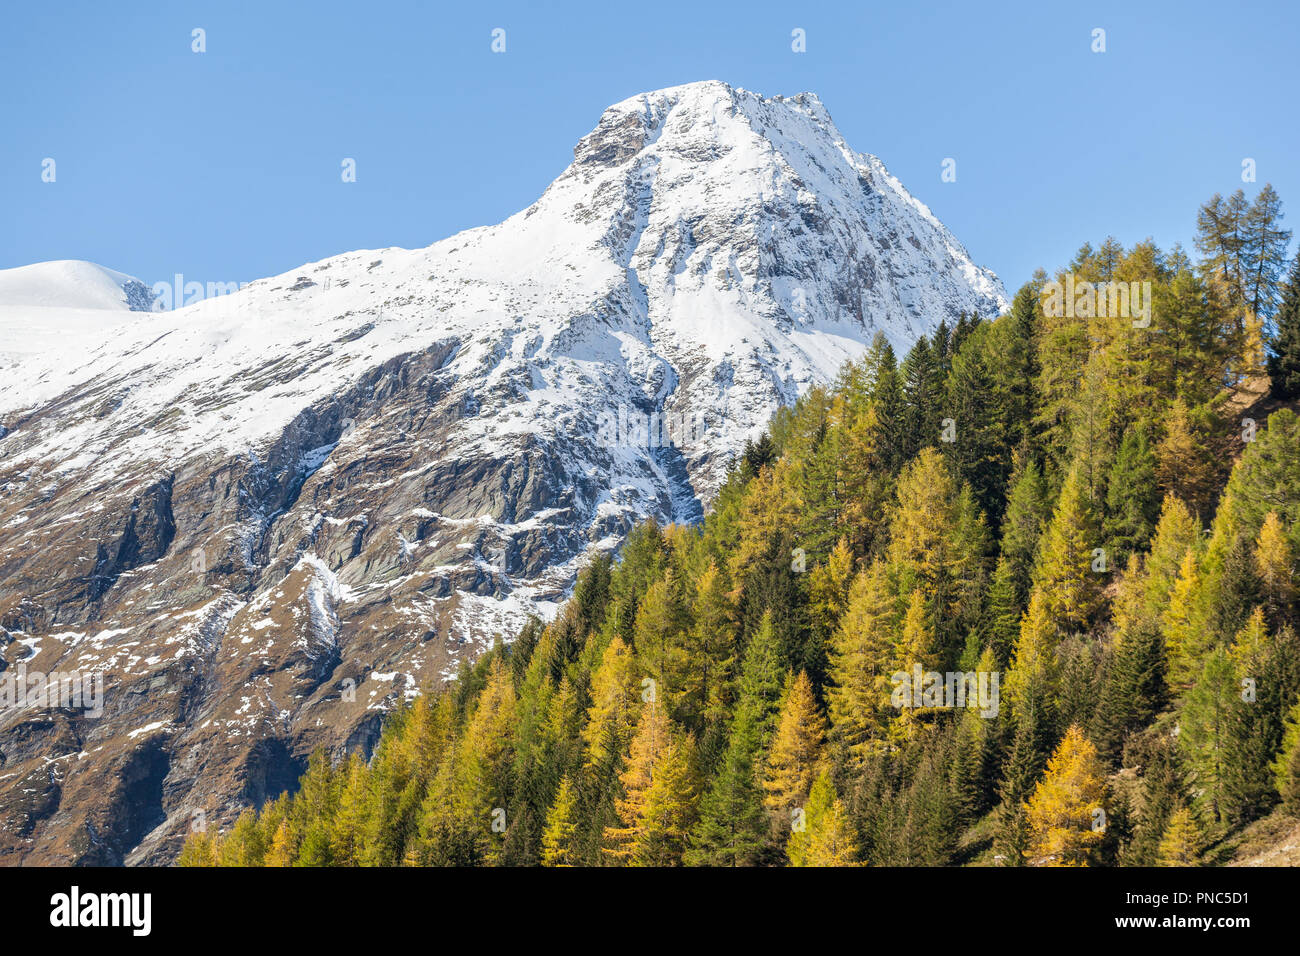 View of the alp mountains in autumn - Stock Image